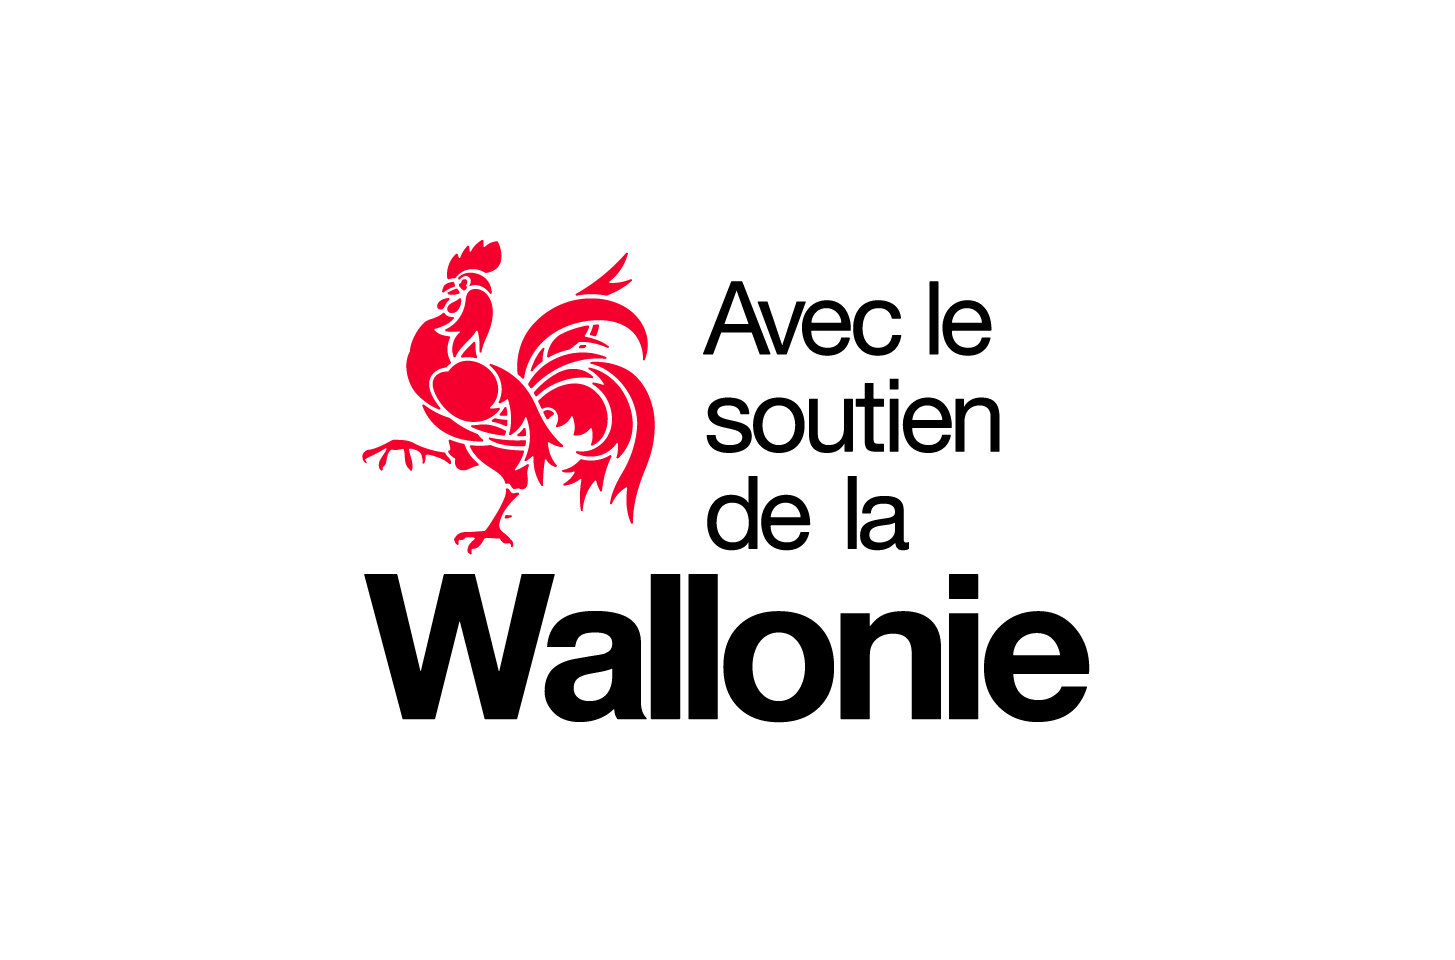 region wallonne (10.9kB)